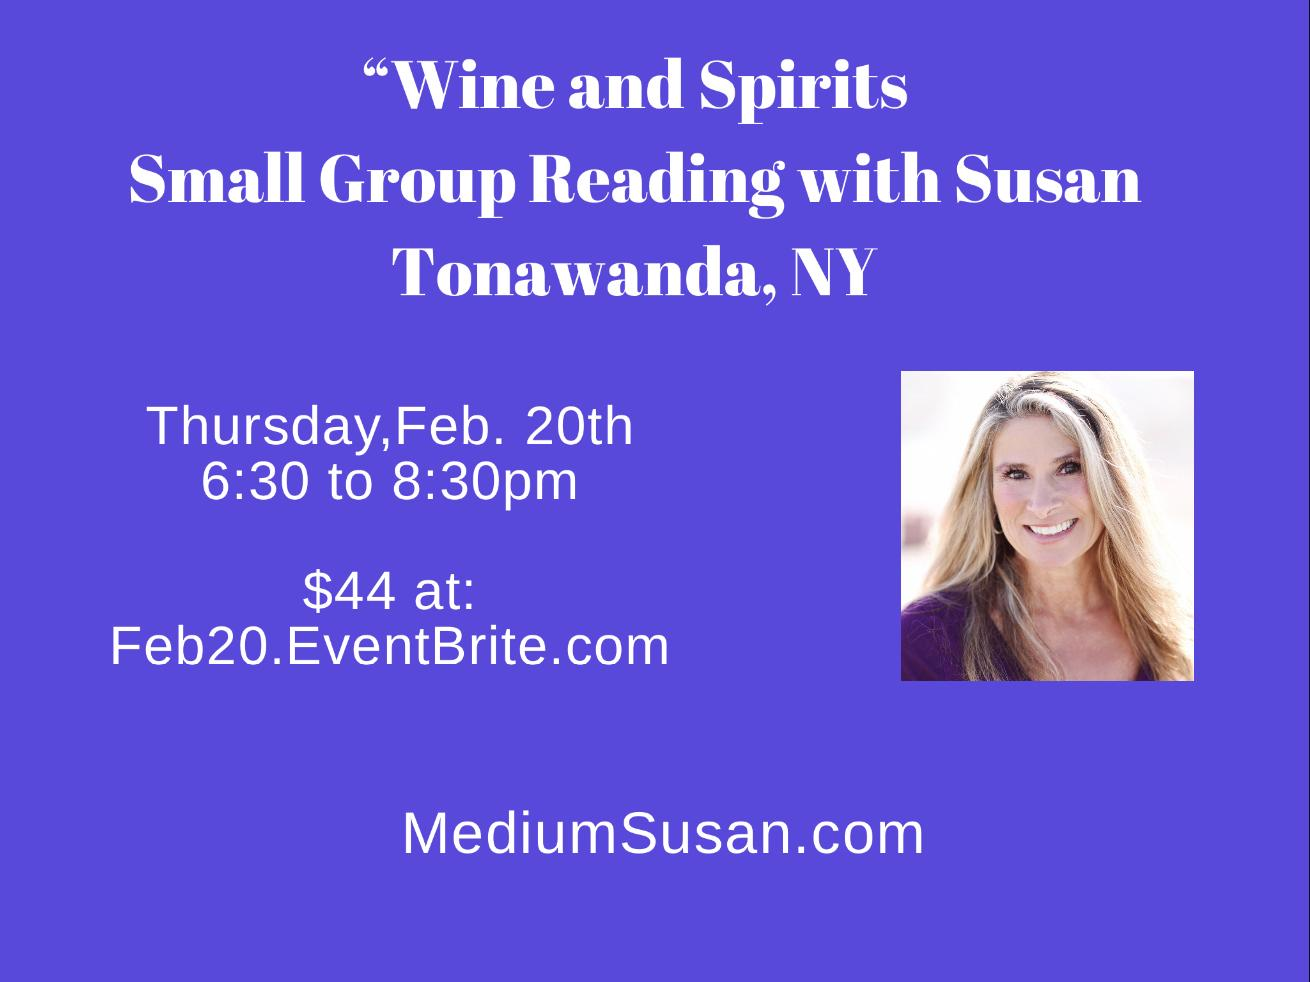 """""""Wine and Spirits"""" in Western NY: Small Group Mediumship/Psychic Readings with Susan Schueler"""